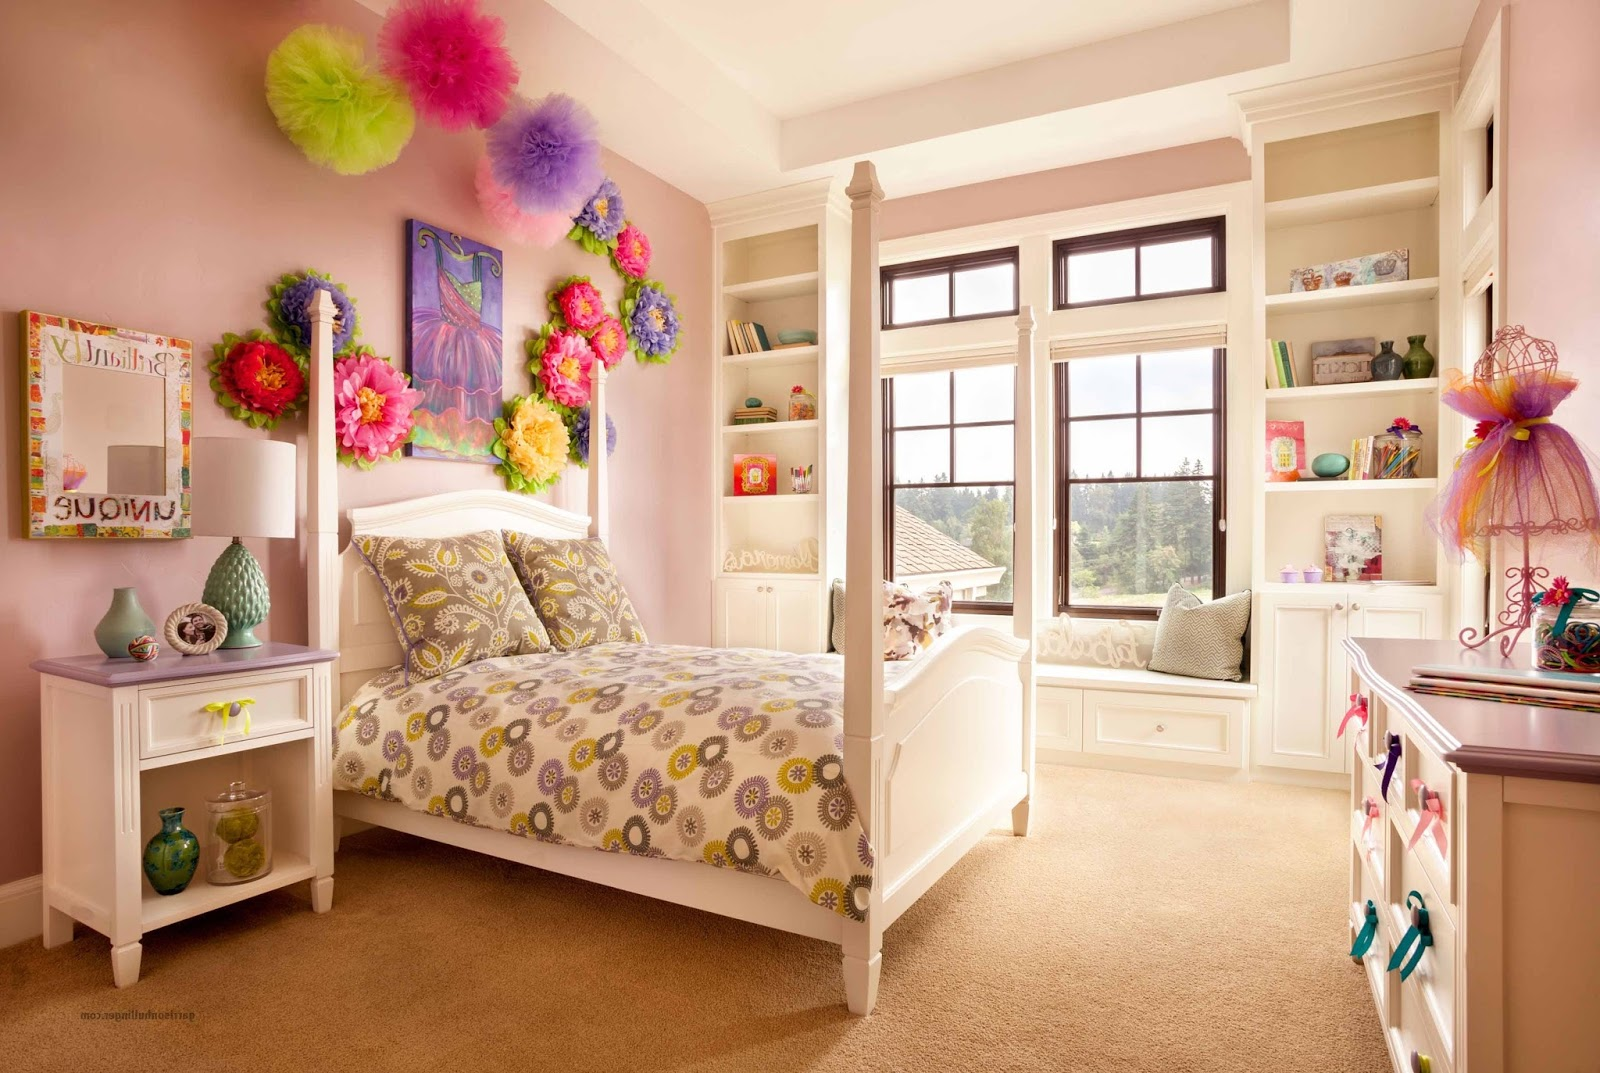 Awesome Cute Toddler Girl Room Ideas Interior Design Cute Ideas To With  Amazing Girls Bedrooms